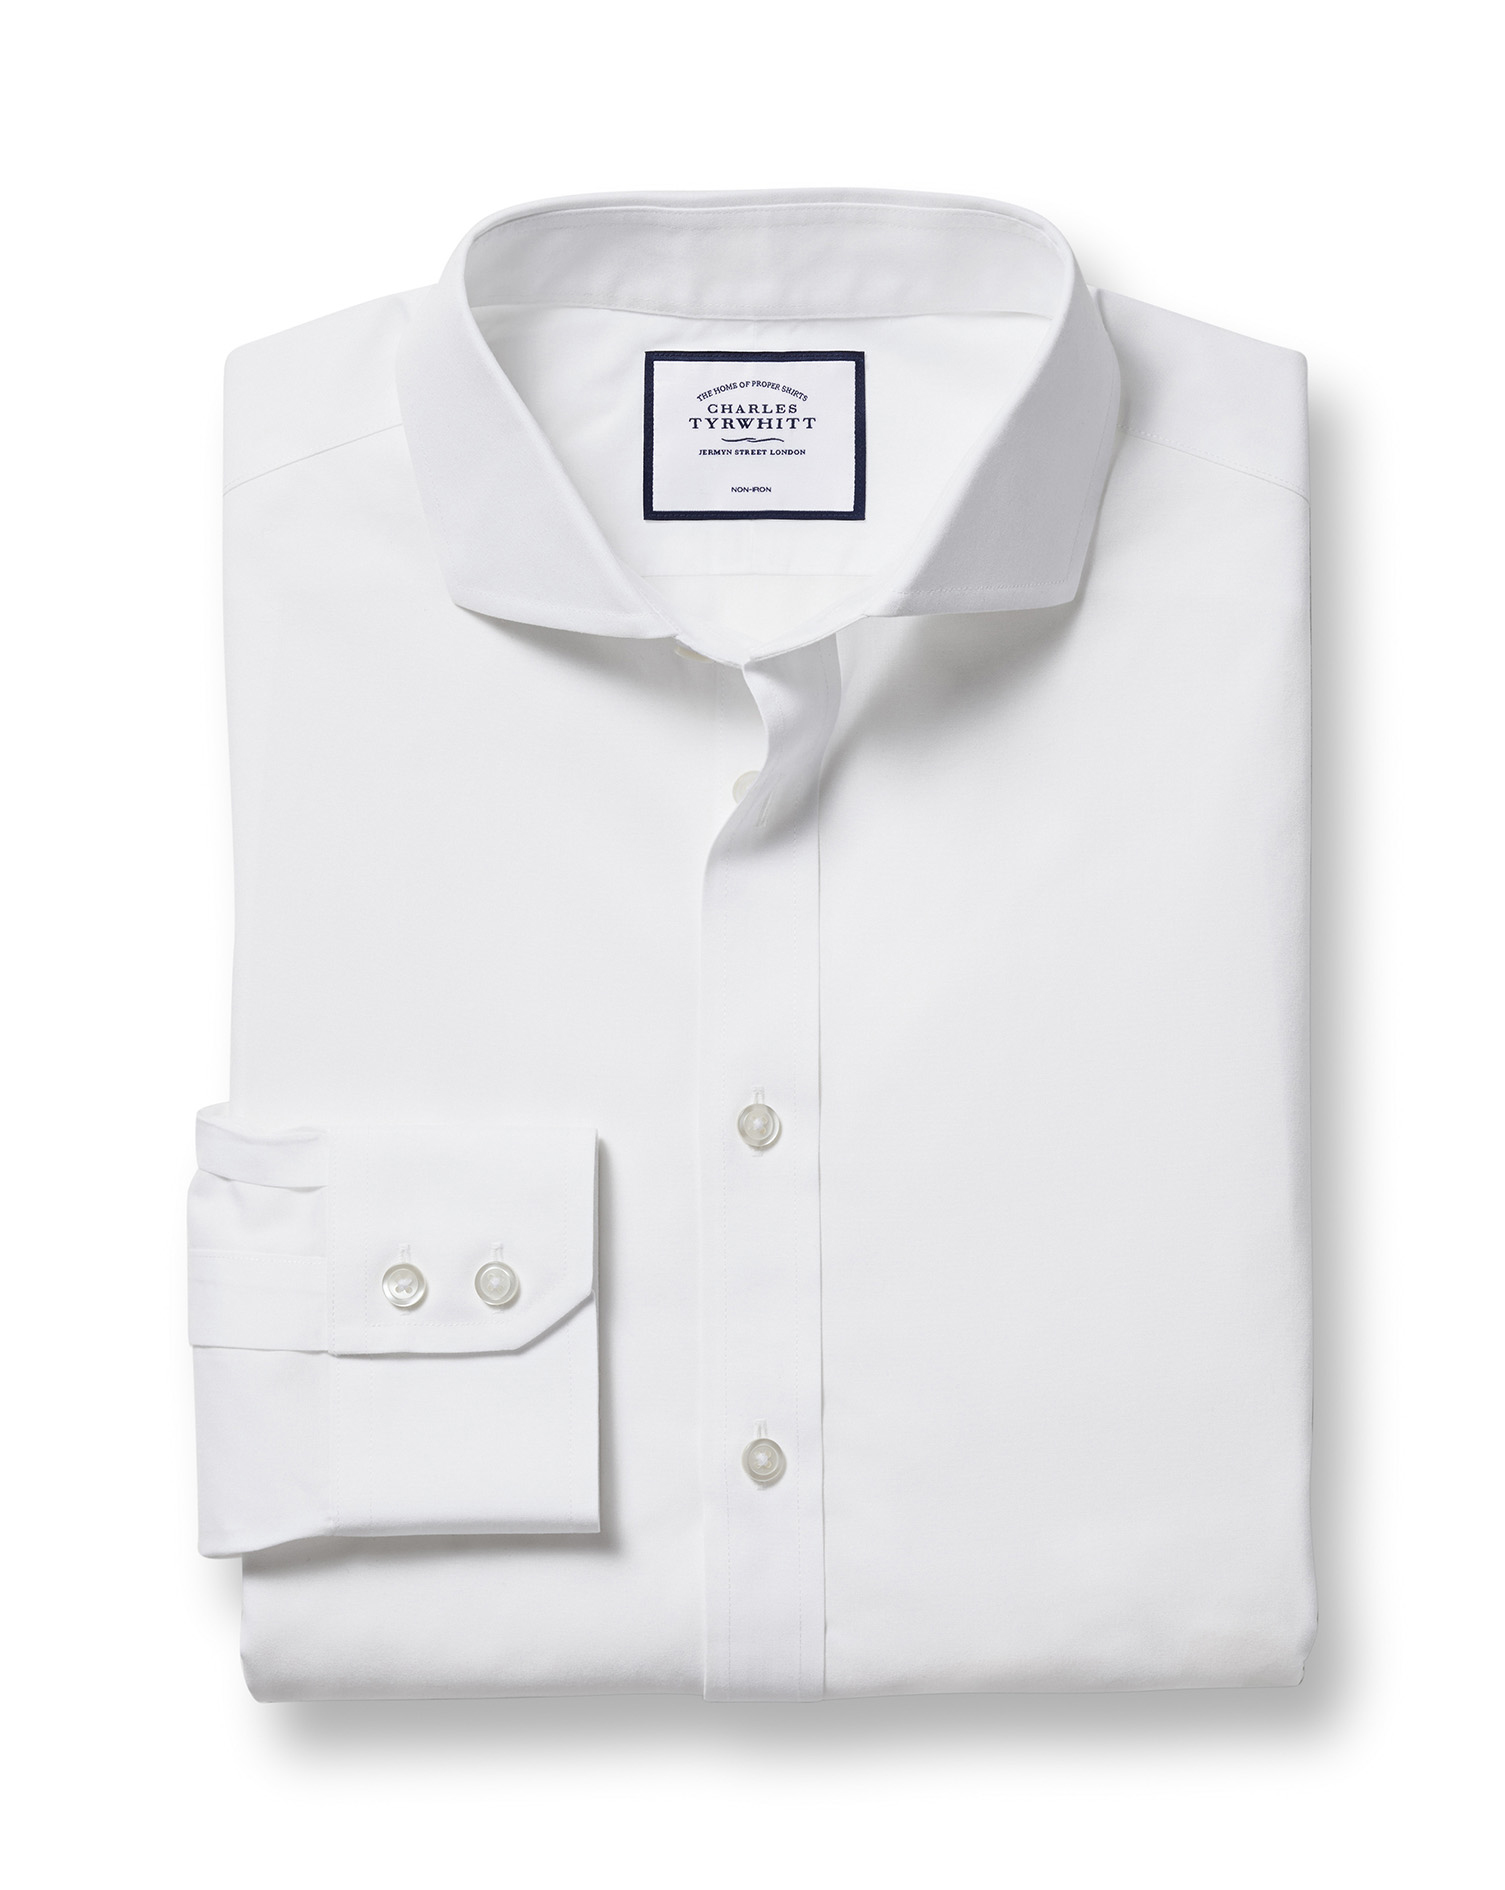 Slim Fit Cutaway Non-Iron Poplin White Cotton Formal Shirt Double Cuff Size 16/33 by Charles Tyrwhit